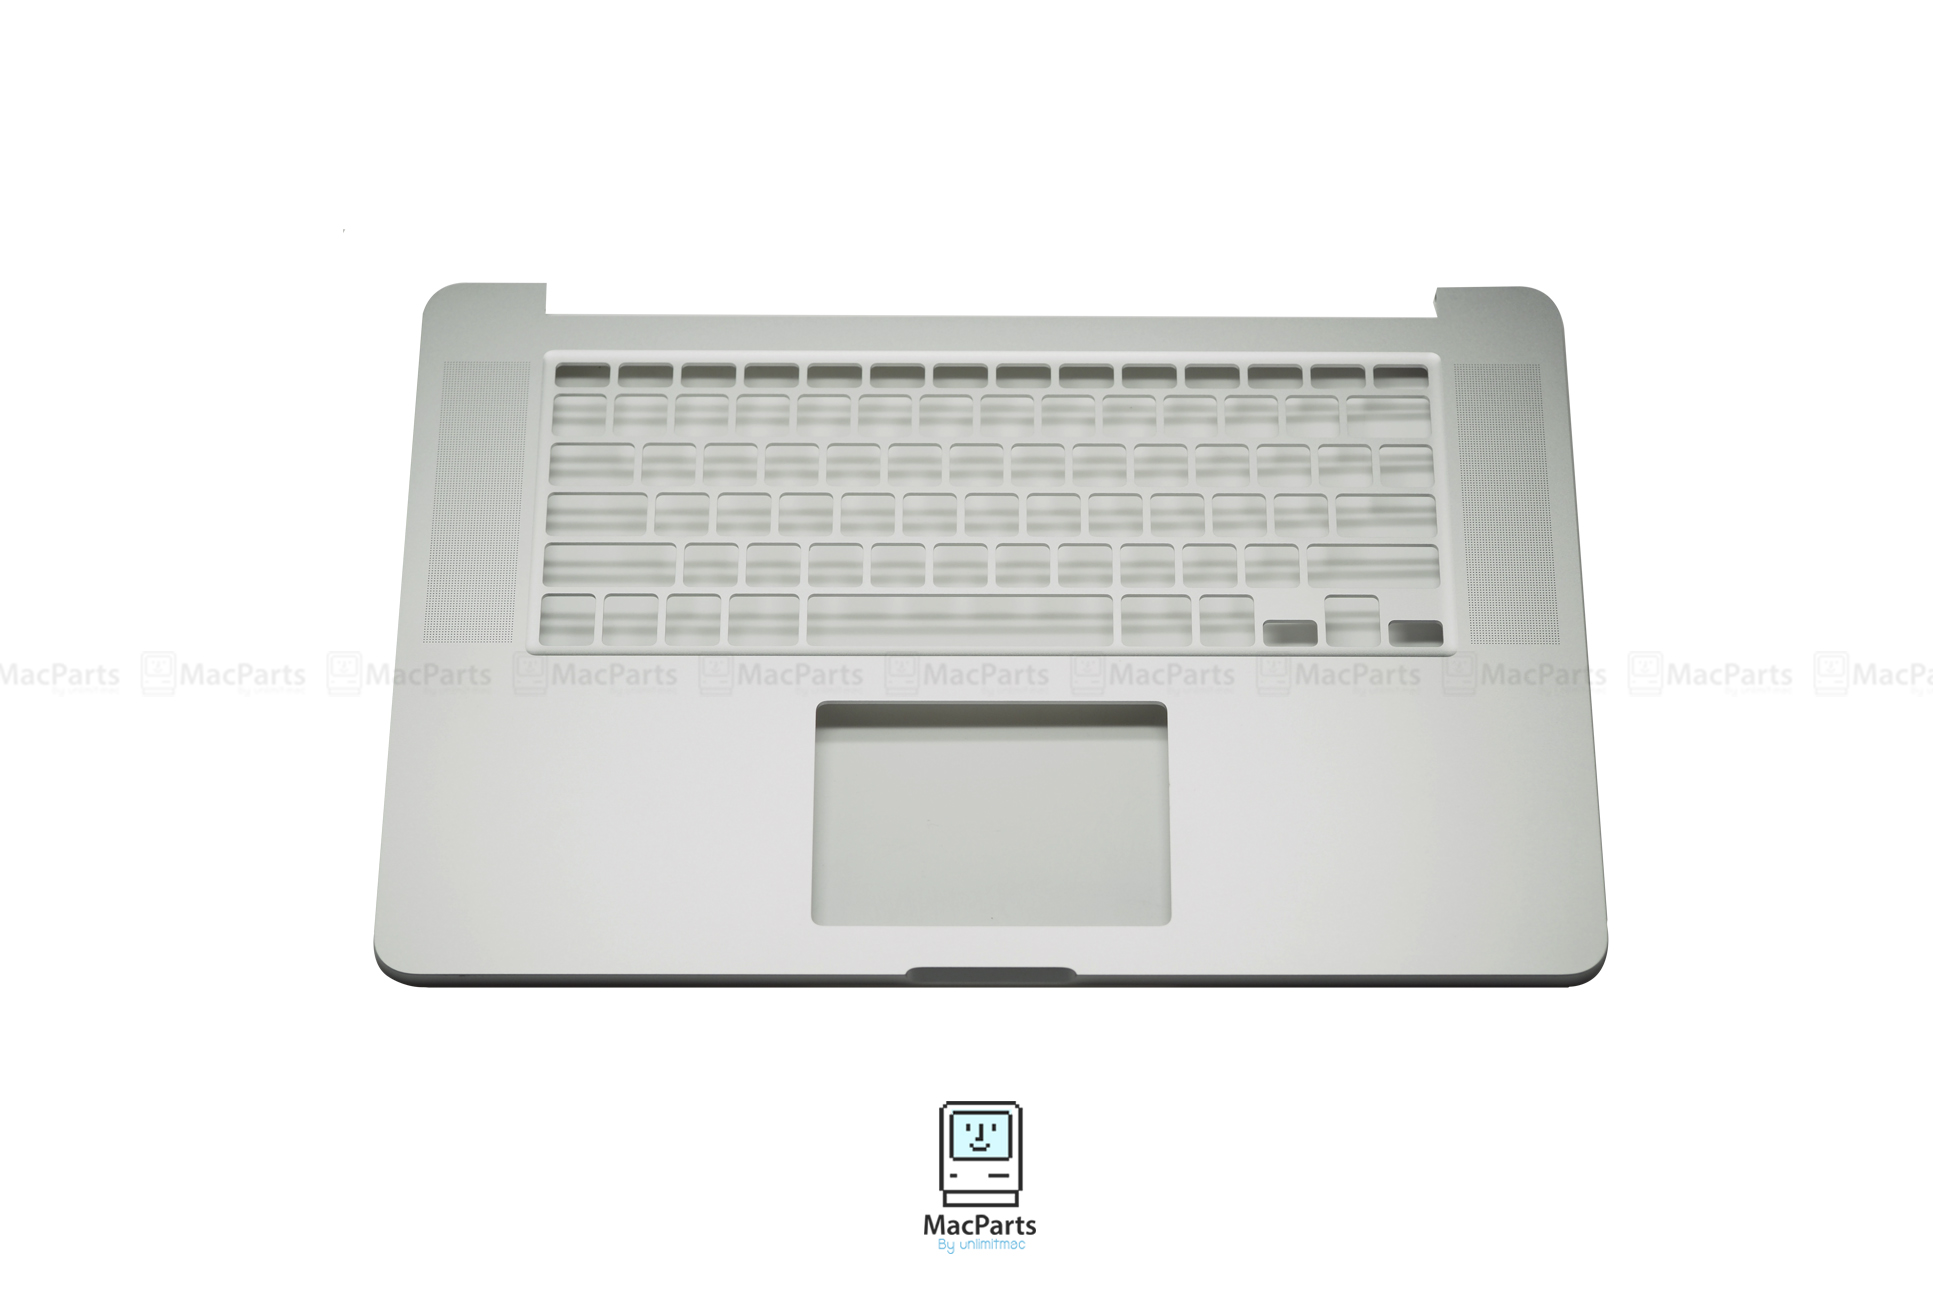 "661-02536 Top Case With Keyboard US For Macbook Pro Retina 15"" Mid 2015 (No Keyboard,Battery,Trackpad)"